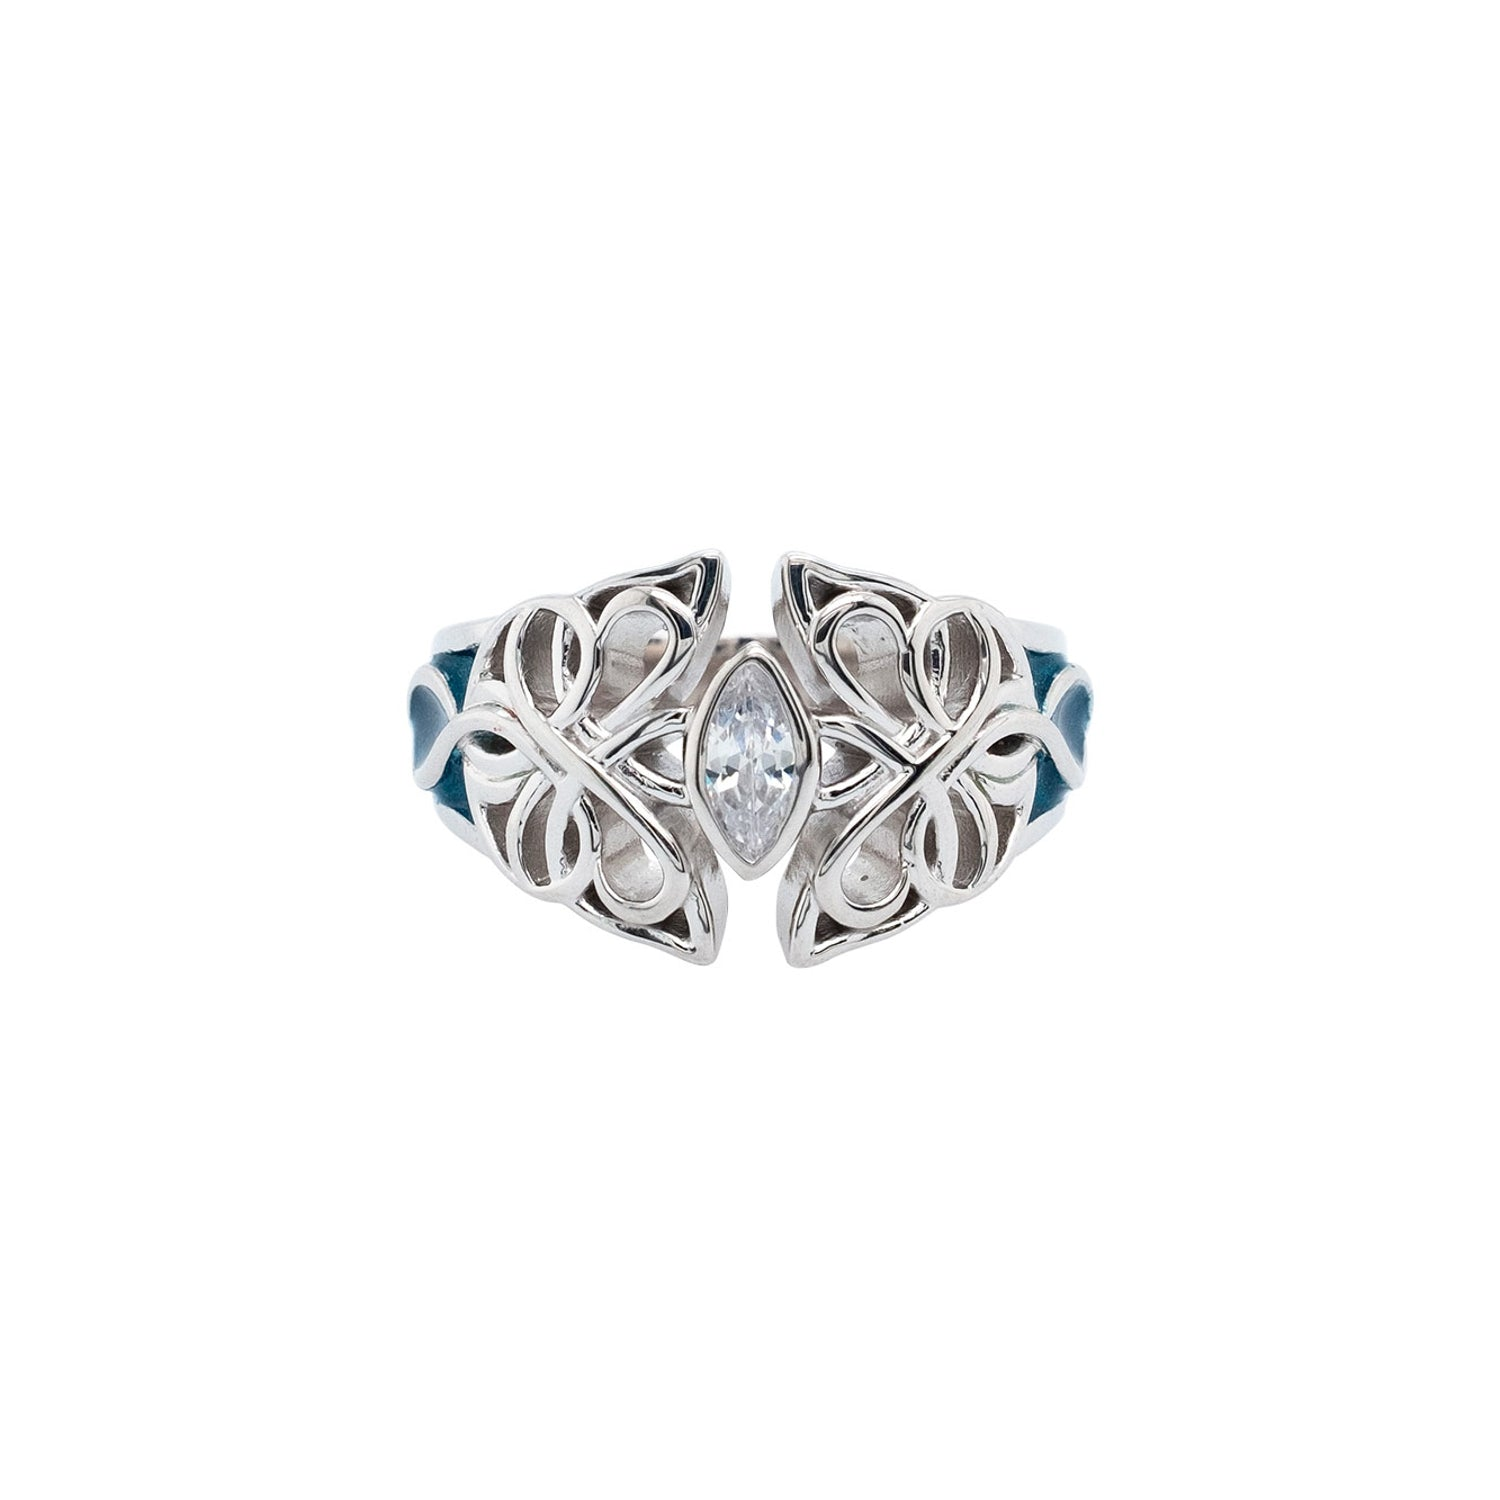 Ring Bands Sky Blue Enamel and White CZ Butterfly Ring (Tapered) from welch and company jewelers near syracuse ny